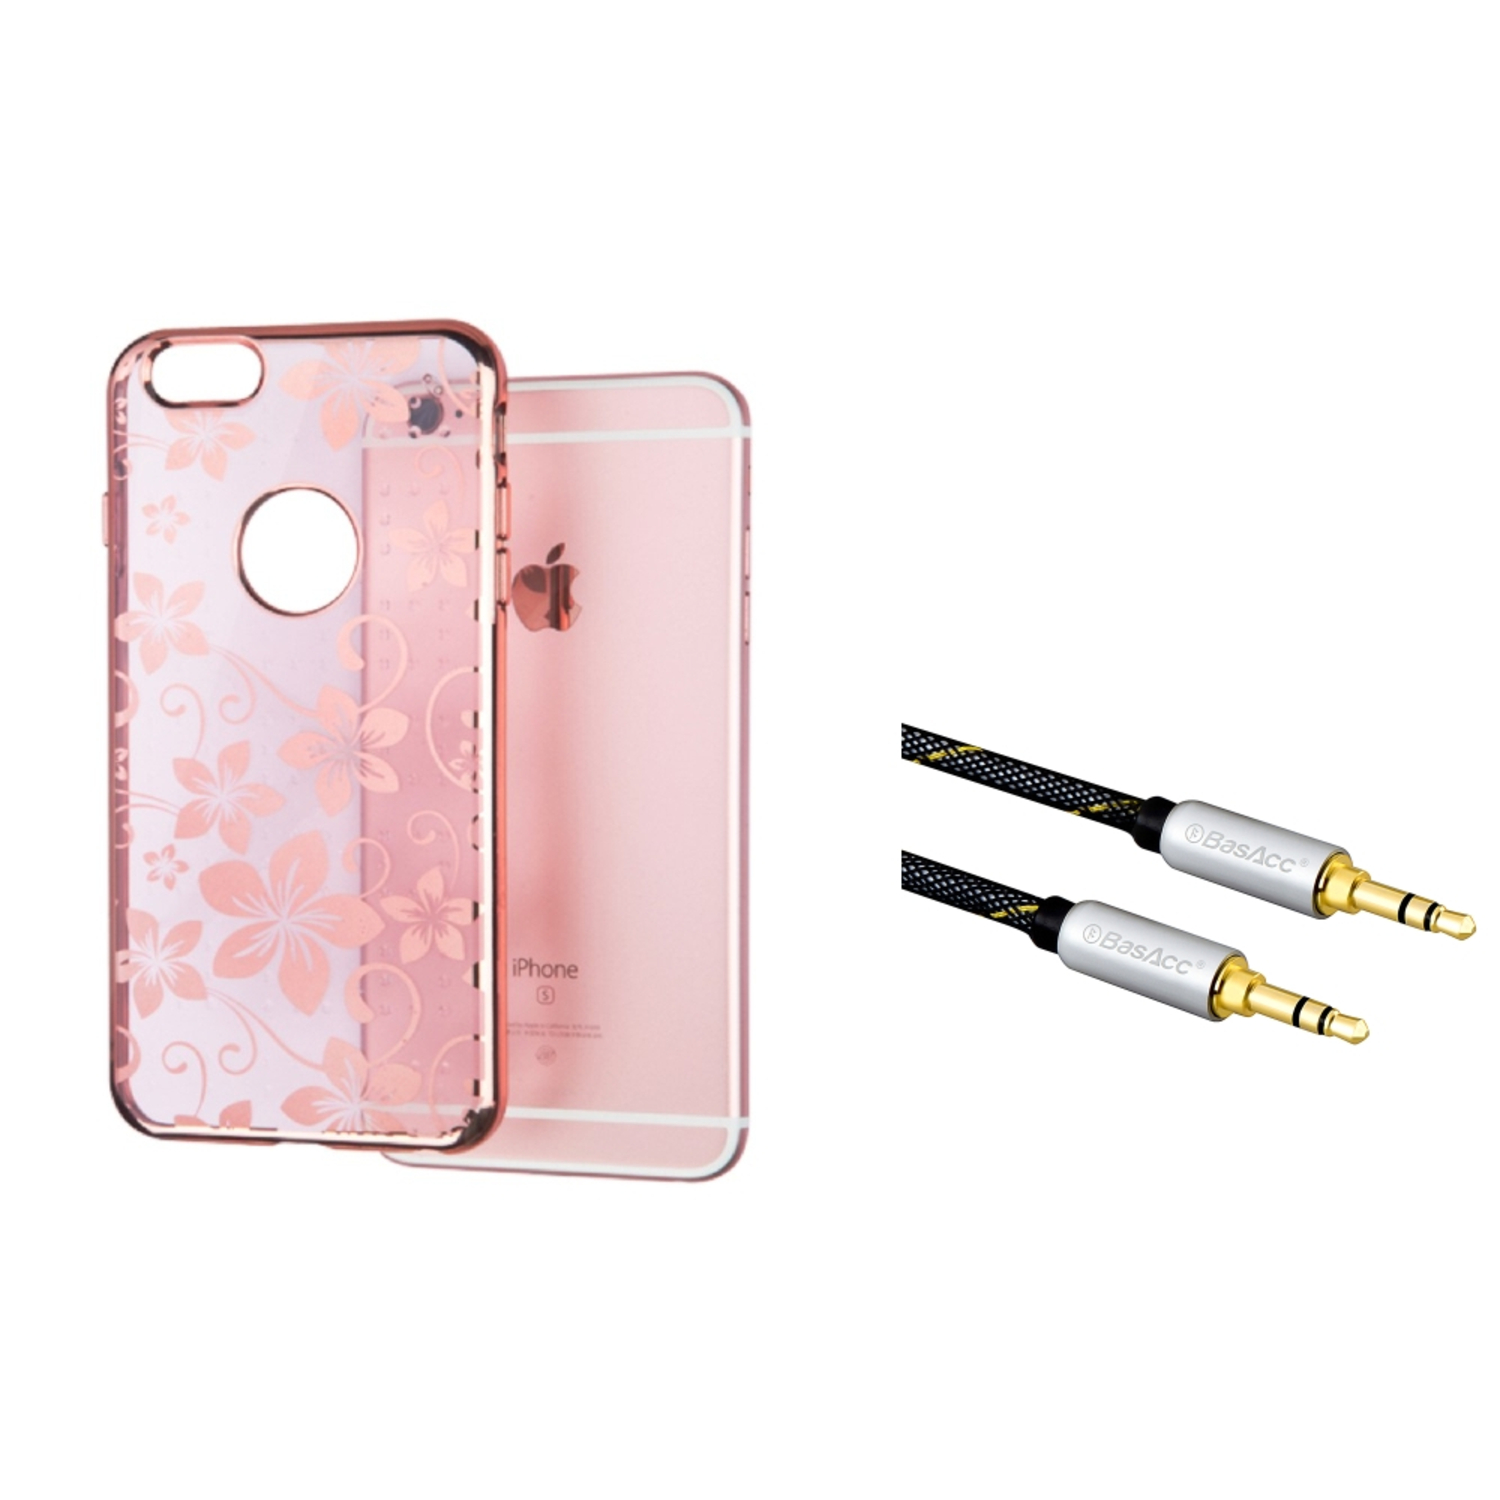 Insten Hibiscus Flower Romance Rubber Case For Apple iPhone 6s Plus / 6 Plus - Rose Gold (with 3.5mm Audio Cable M/M)